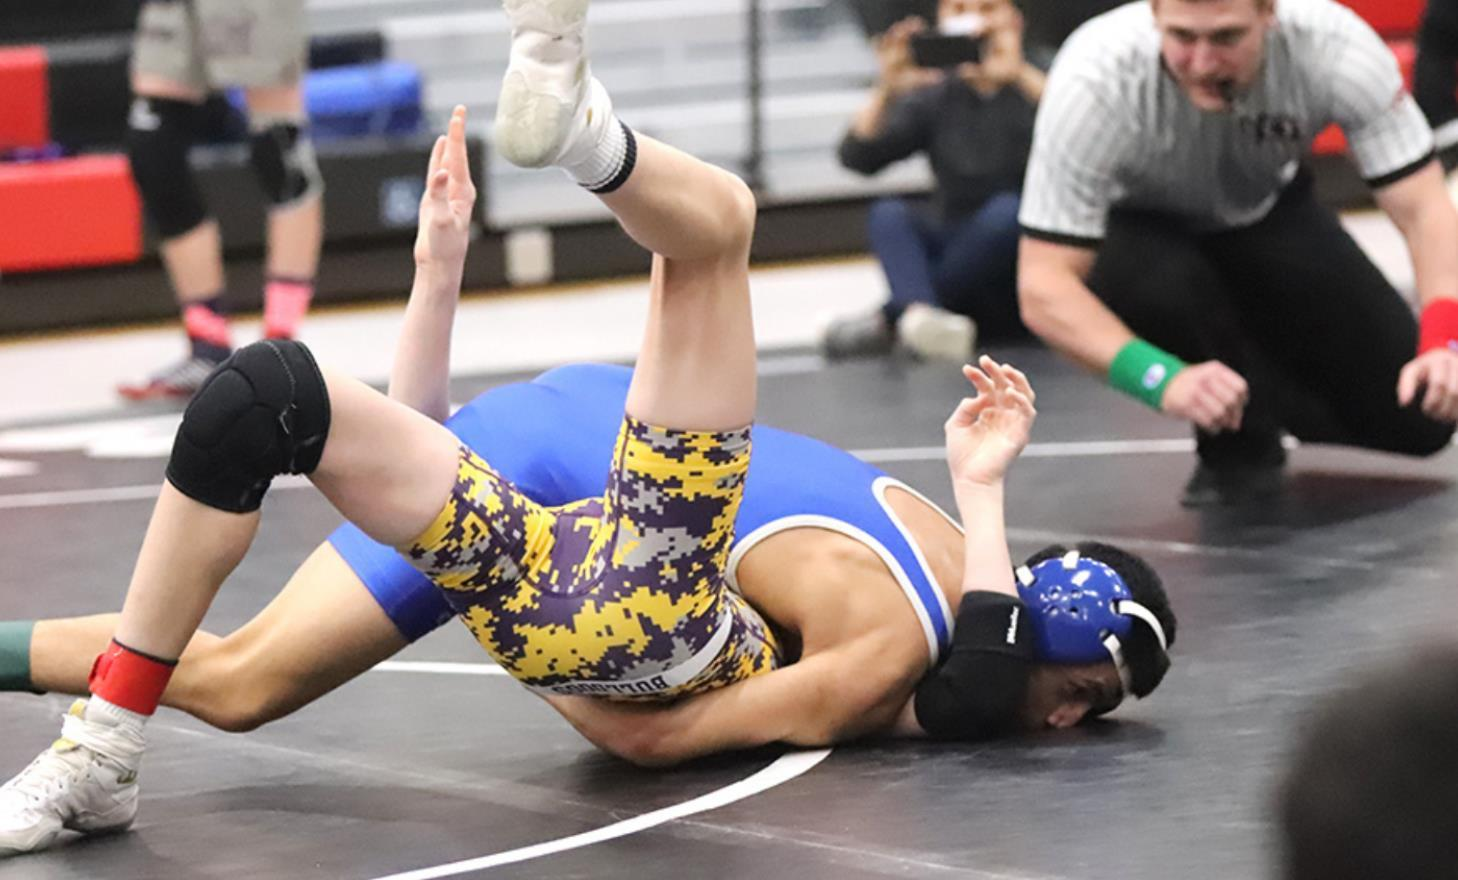 Jose Escandon, wrestling at the Class C-4B Sub-district last weekend, pins a Bridgeport foe. Escandon earned first place at 113 pounds and will join teammates Ruben Hernandez, Andres Aguilar, Jesus Hernandez, and Daniel Yepez at the district meet in Valen